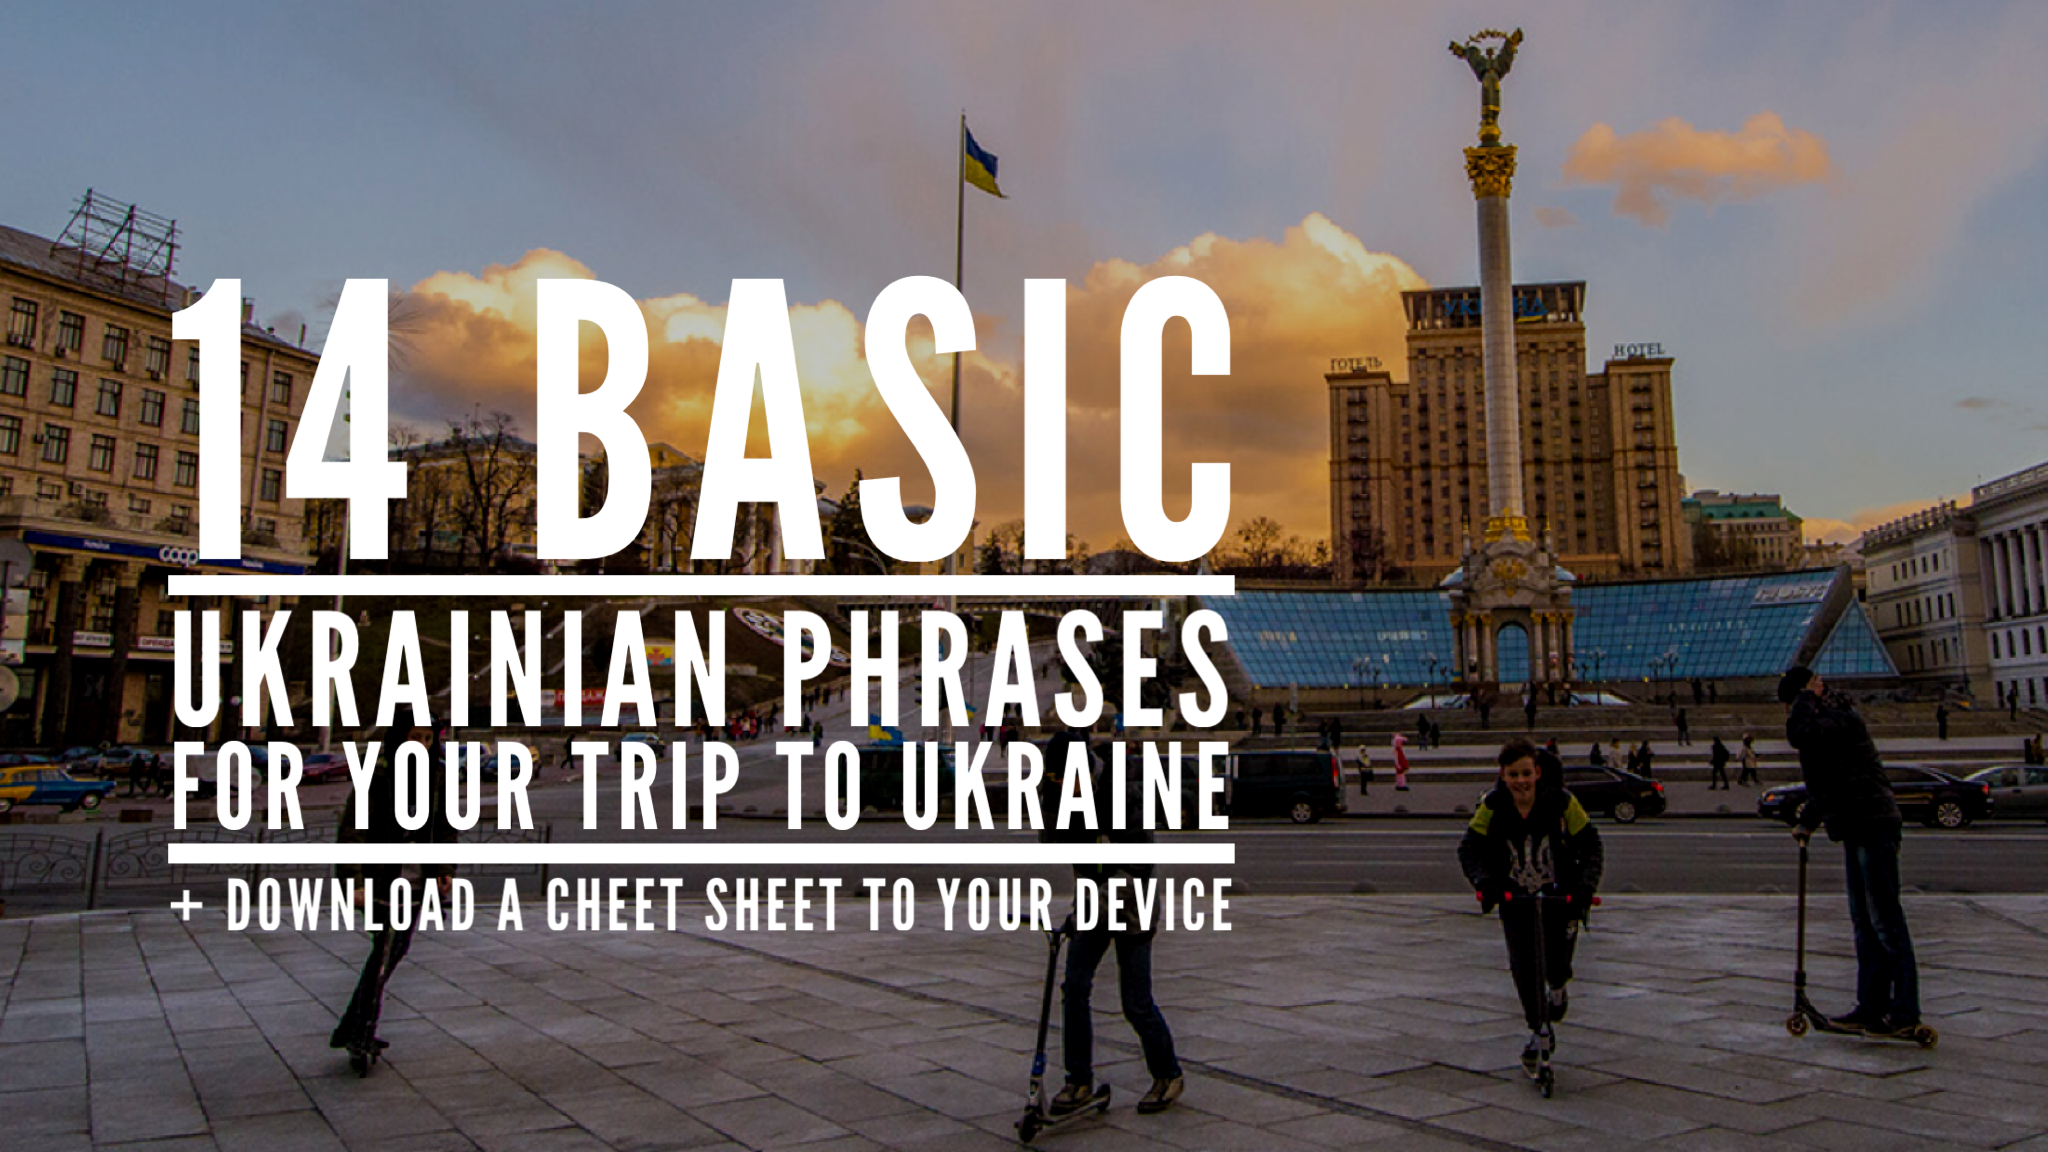 14 Basic Ukrainian Phrases for Your Trip to Ukraine (+ a Cheat Sheet For Your Device!) - Ukrainian Lessons